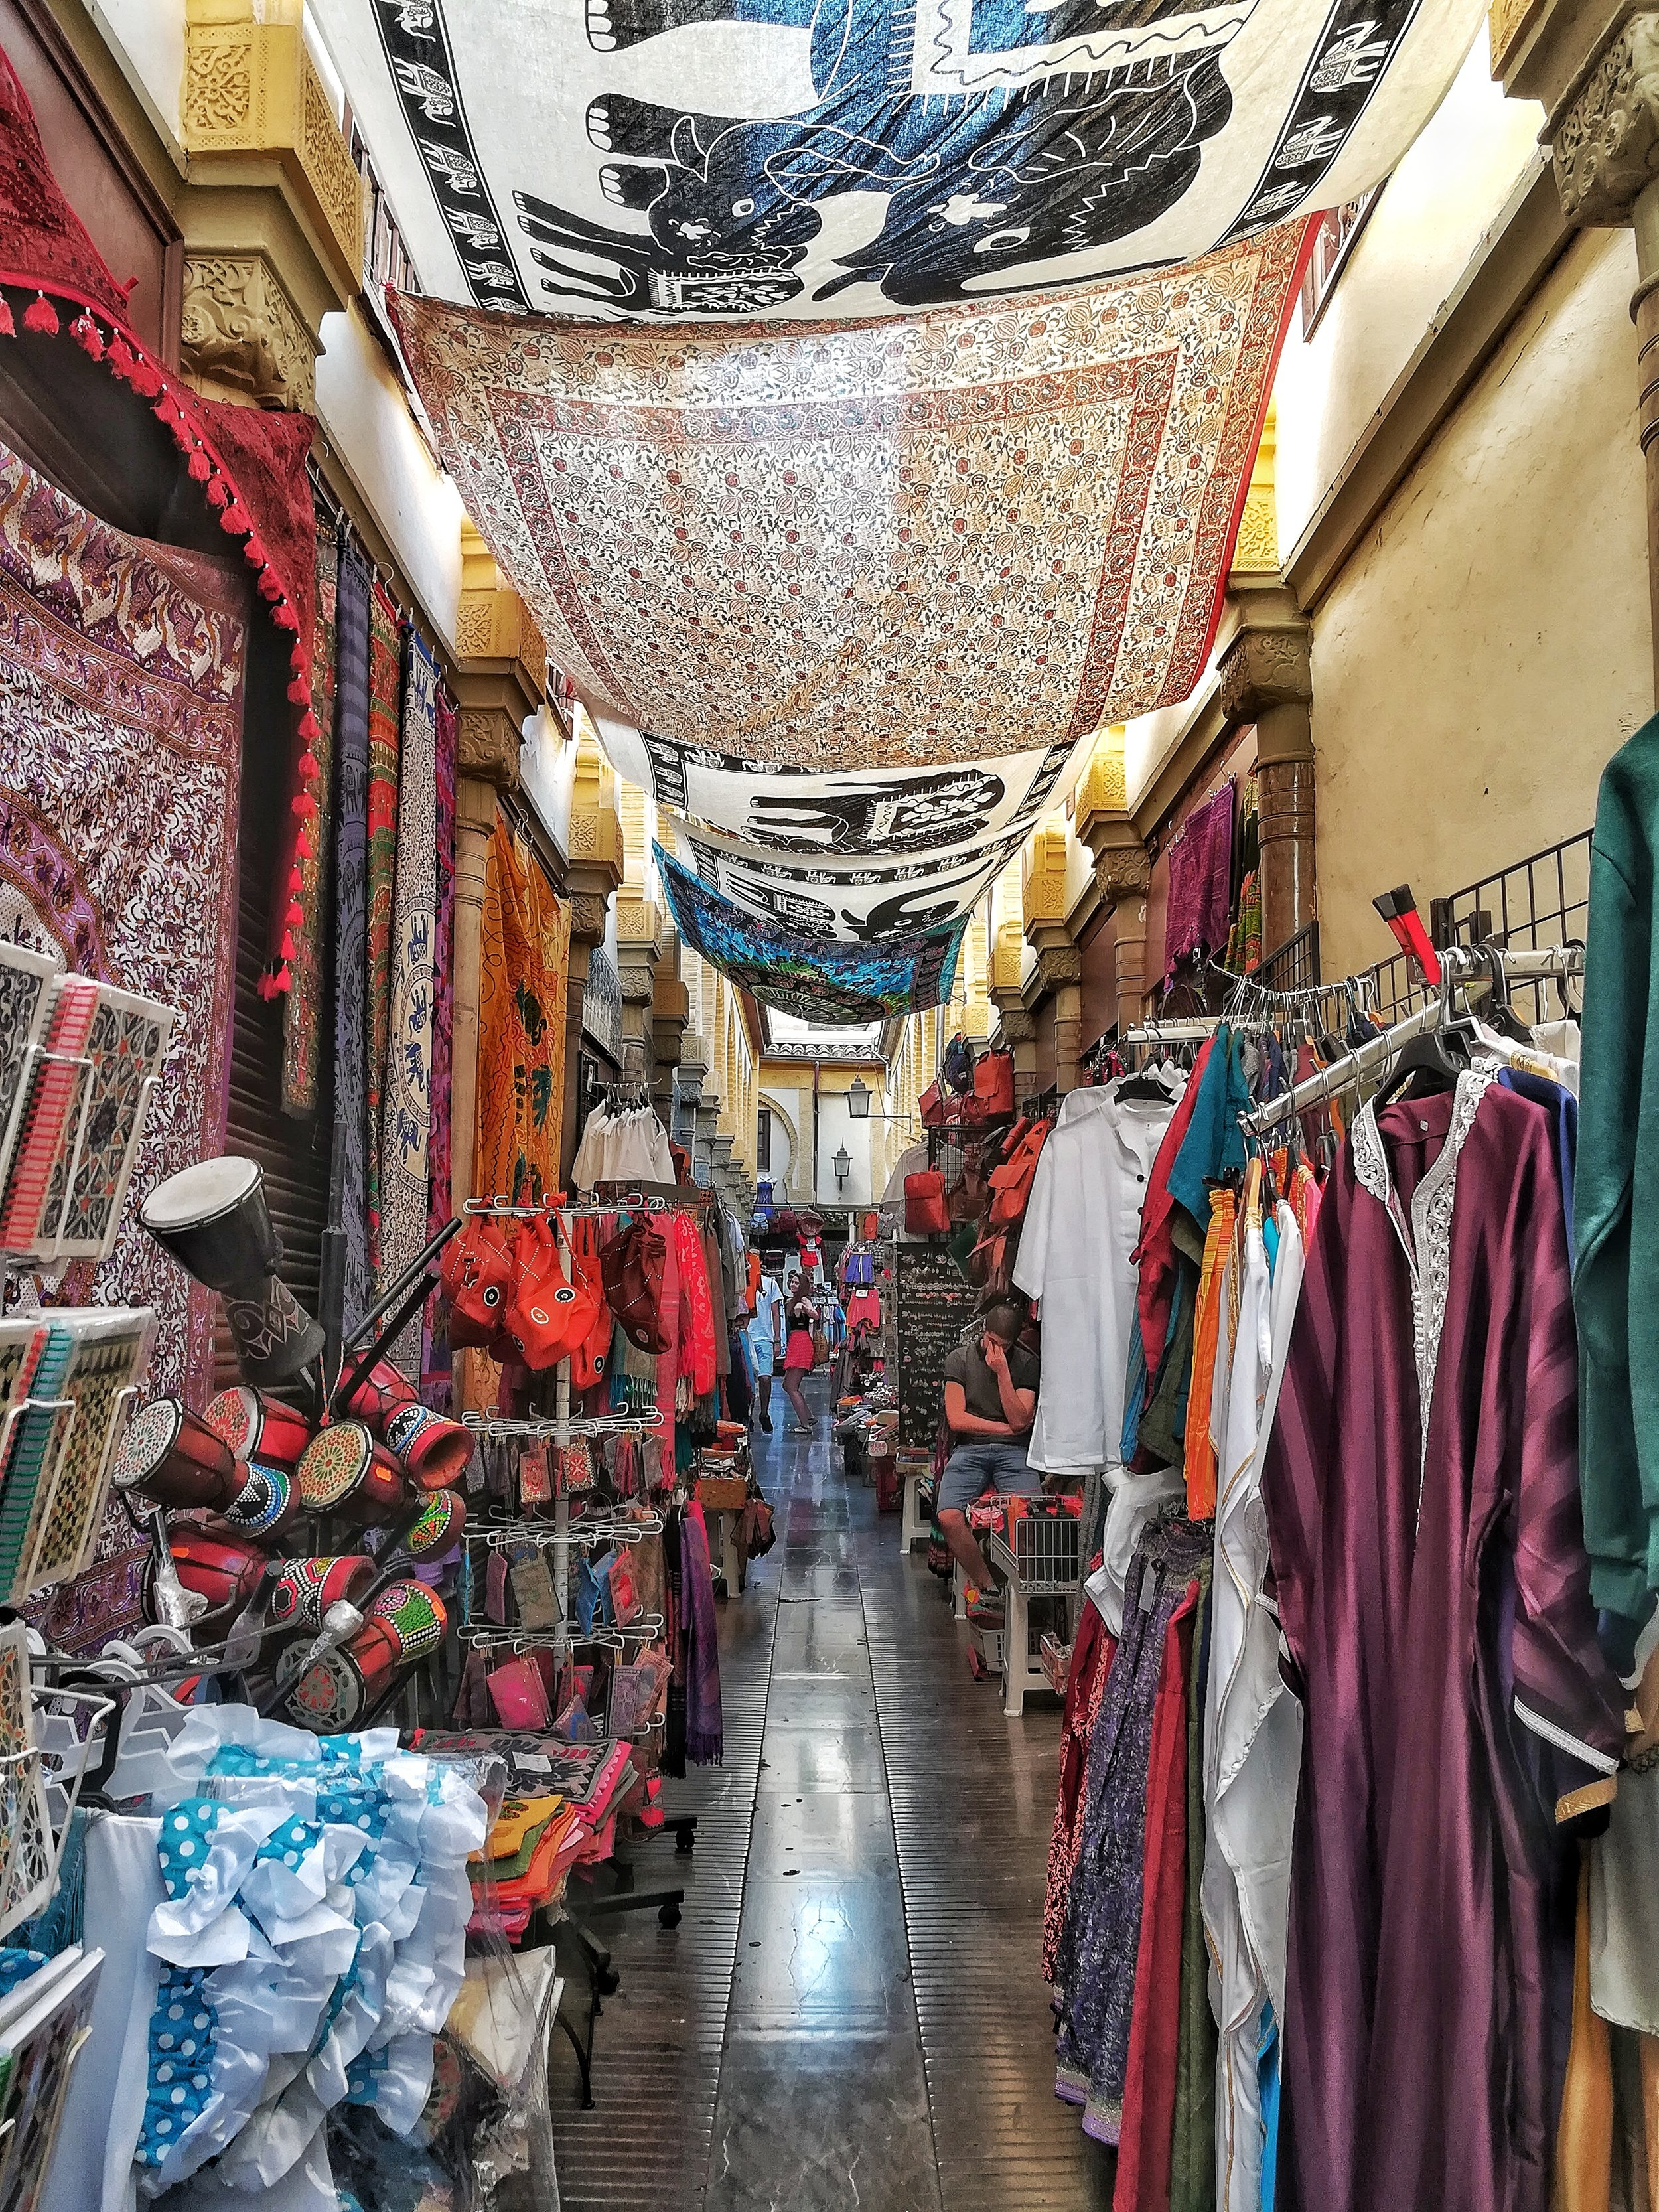 The Morocco inspired street markets